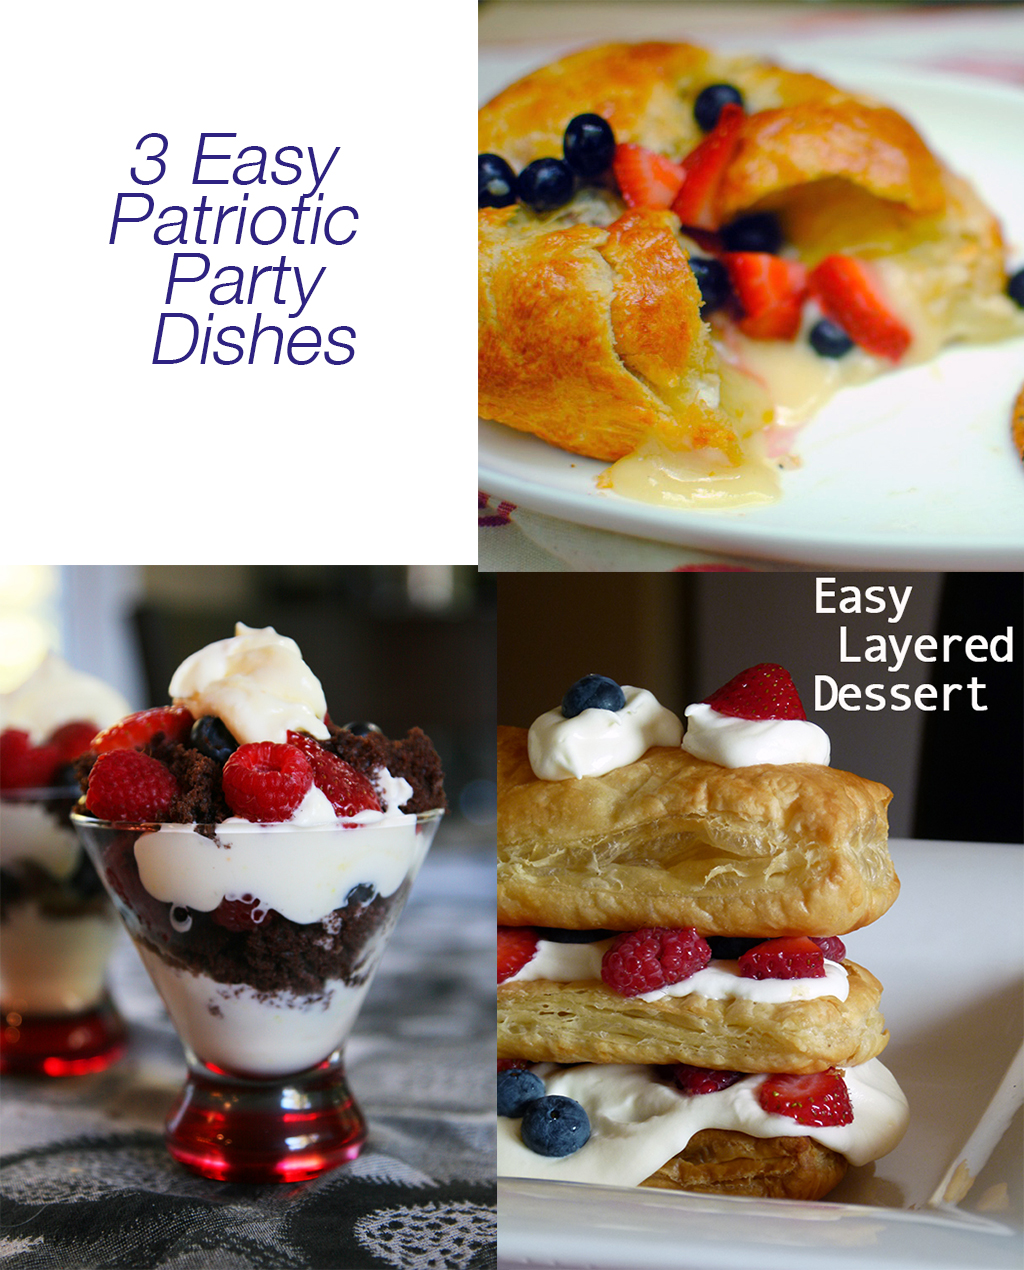 Patriotic Party Dishes